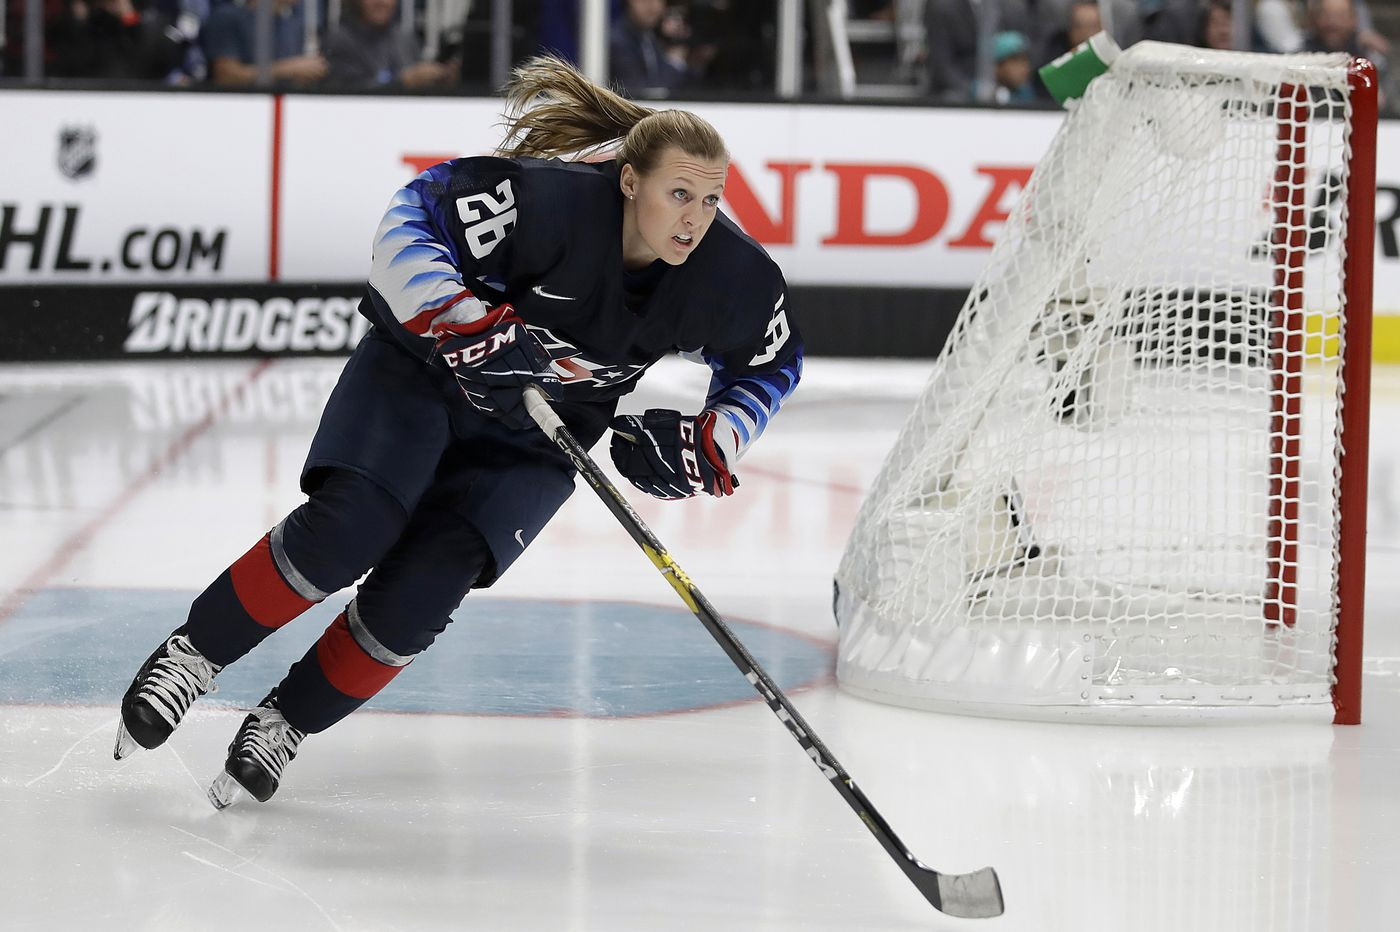 Women's hockey players form union with goal of creating viable league in North America